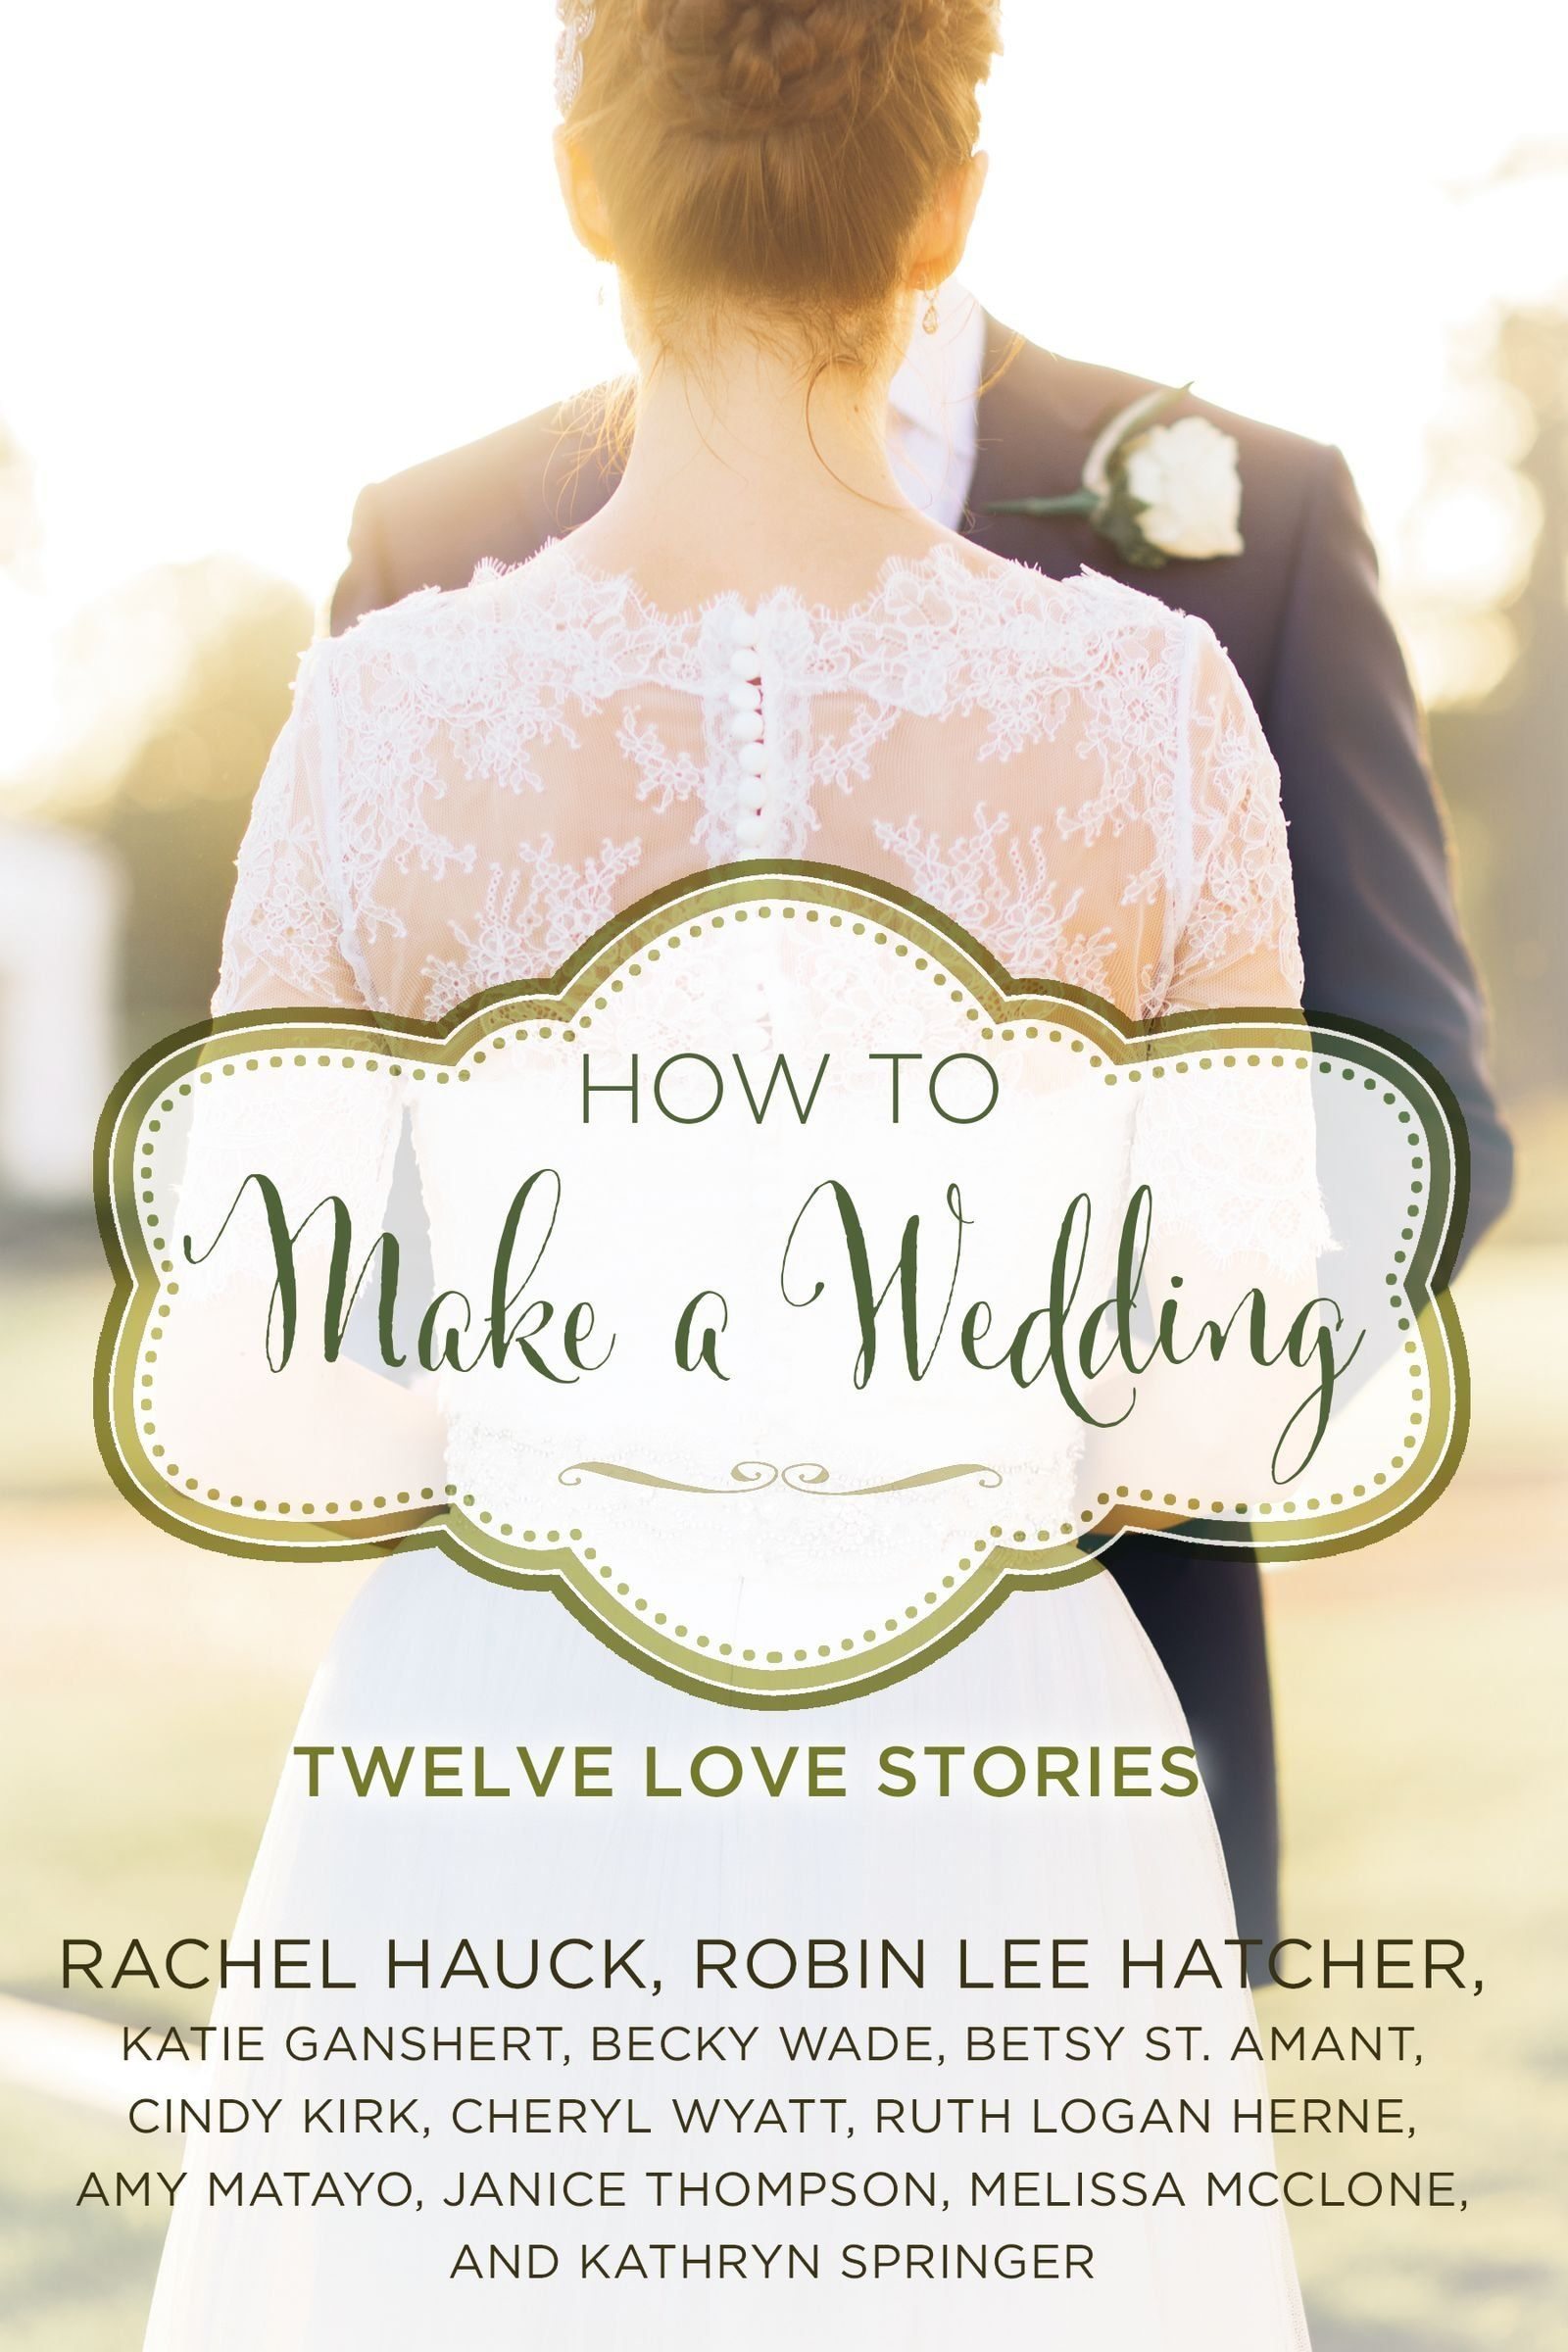 how to make a wedding twelve love stories a year of weddings